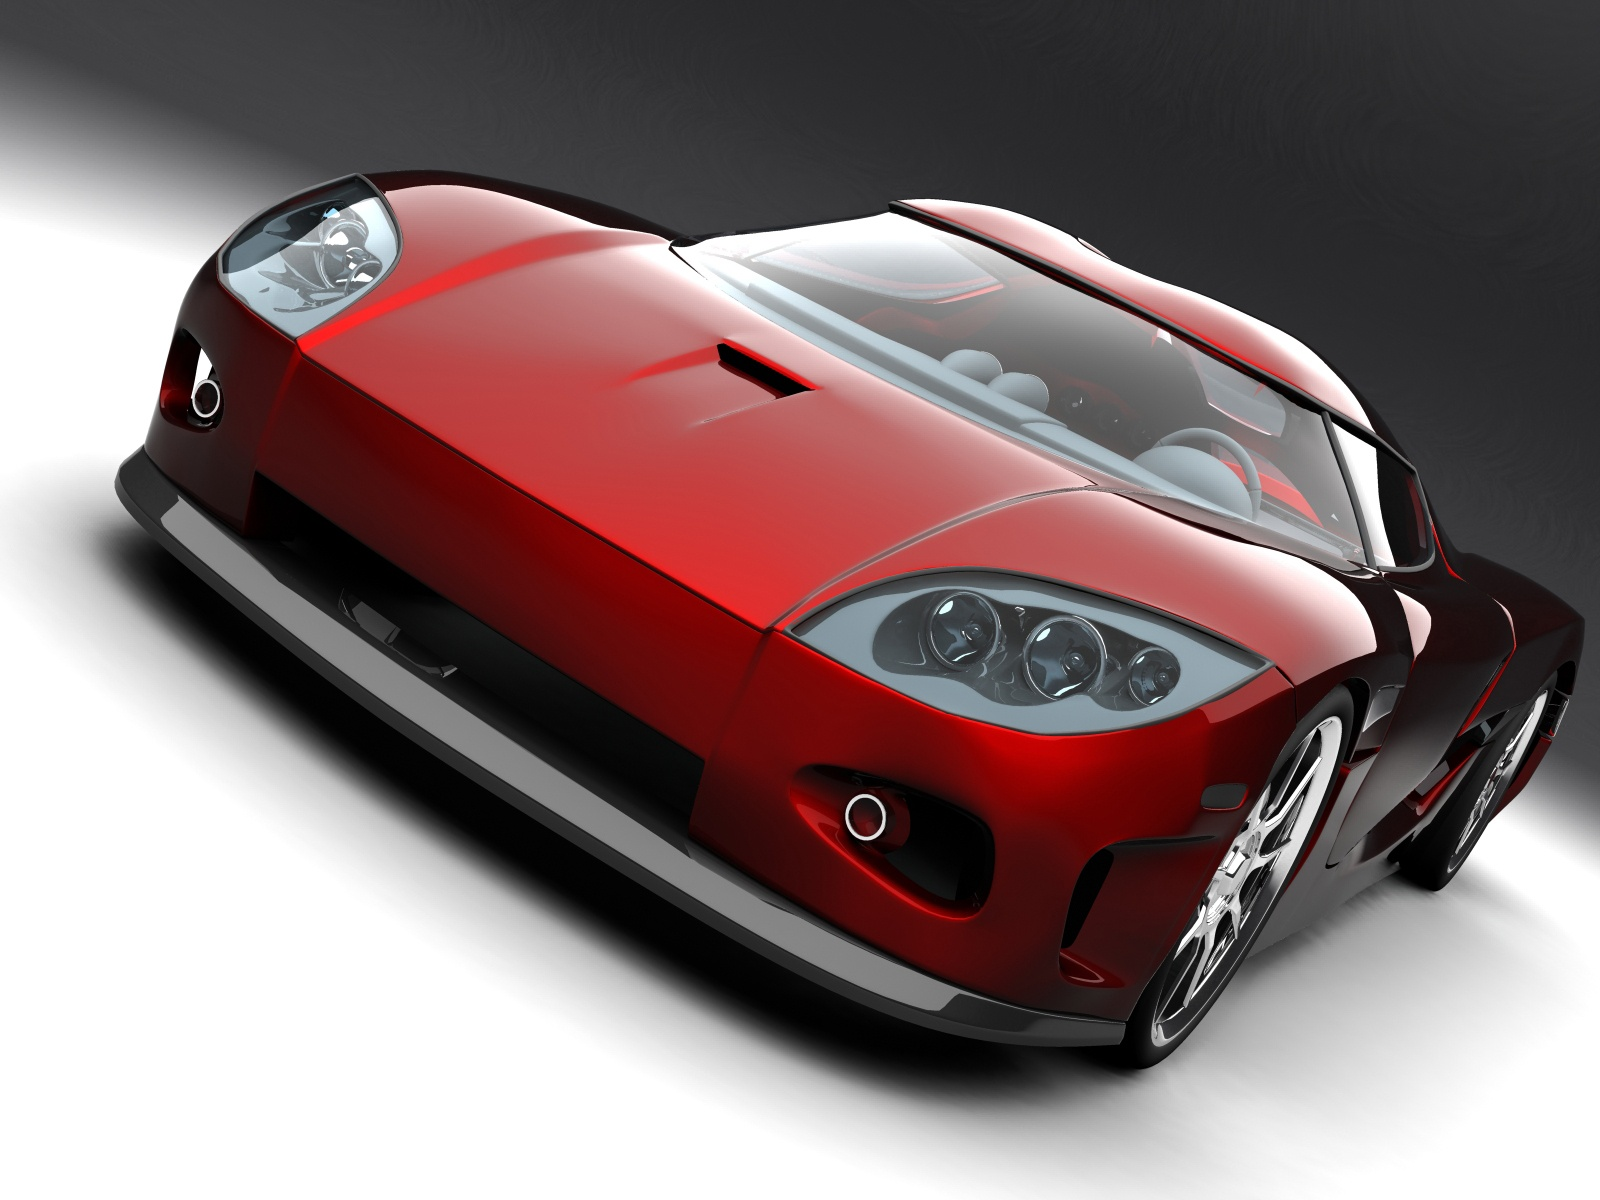 Koenigsegg Red Concept Car 161.94 Kb